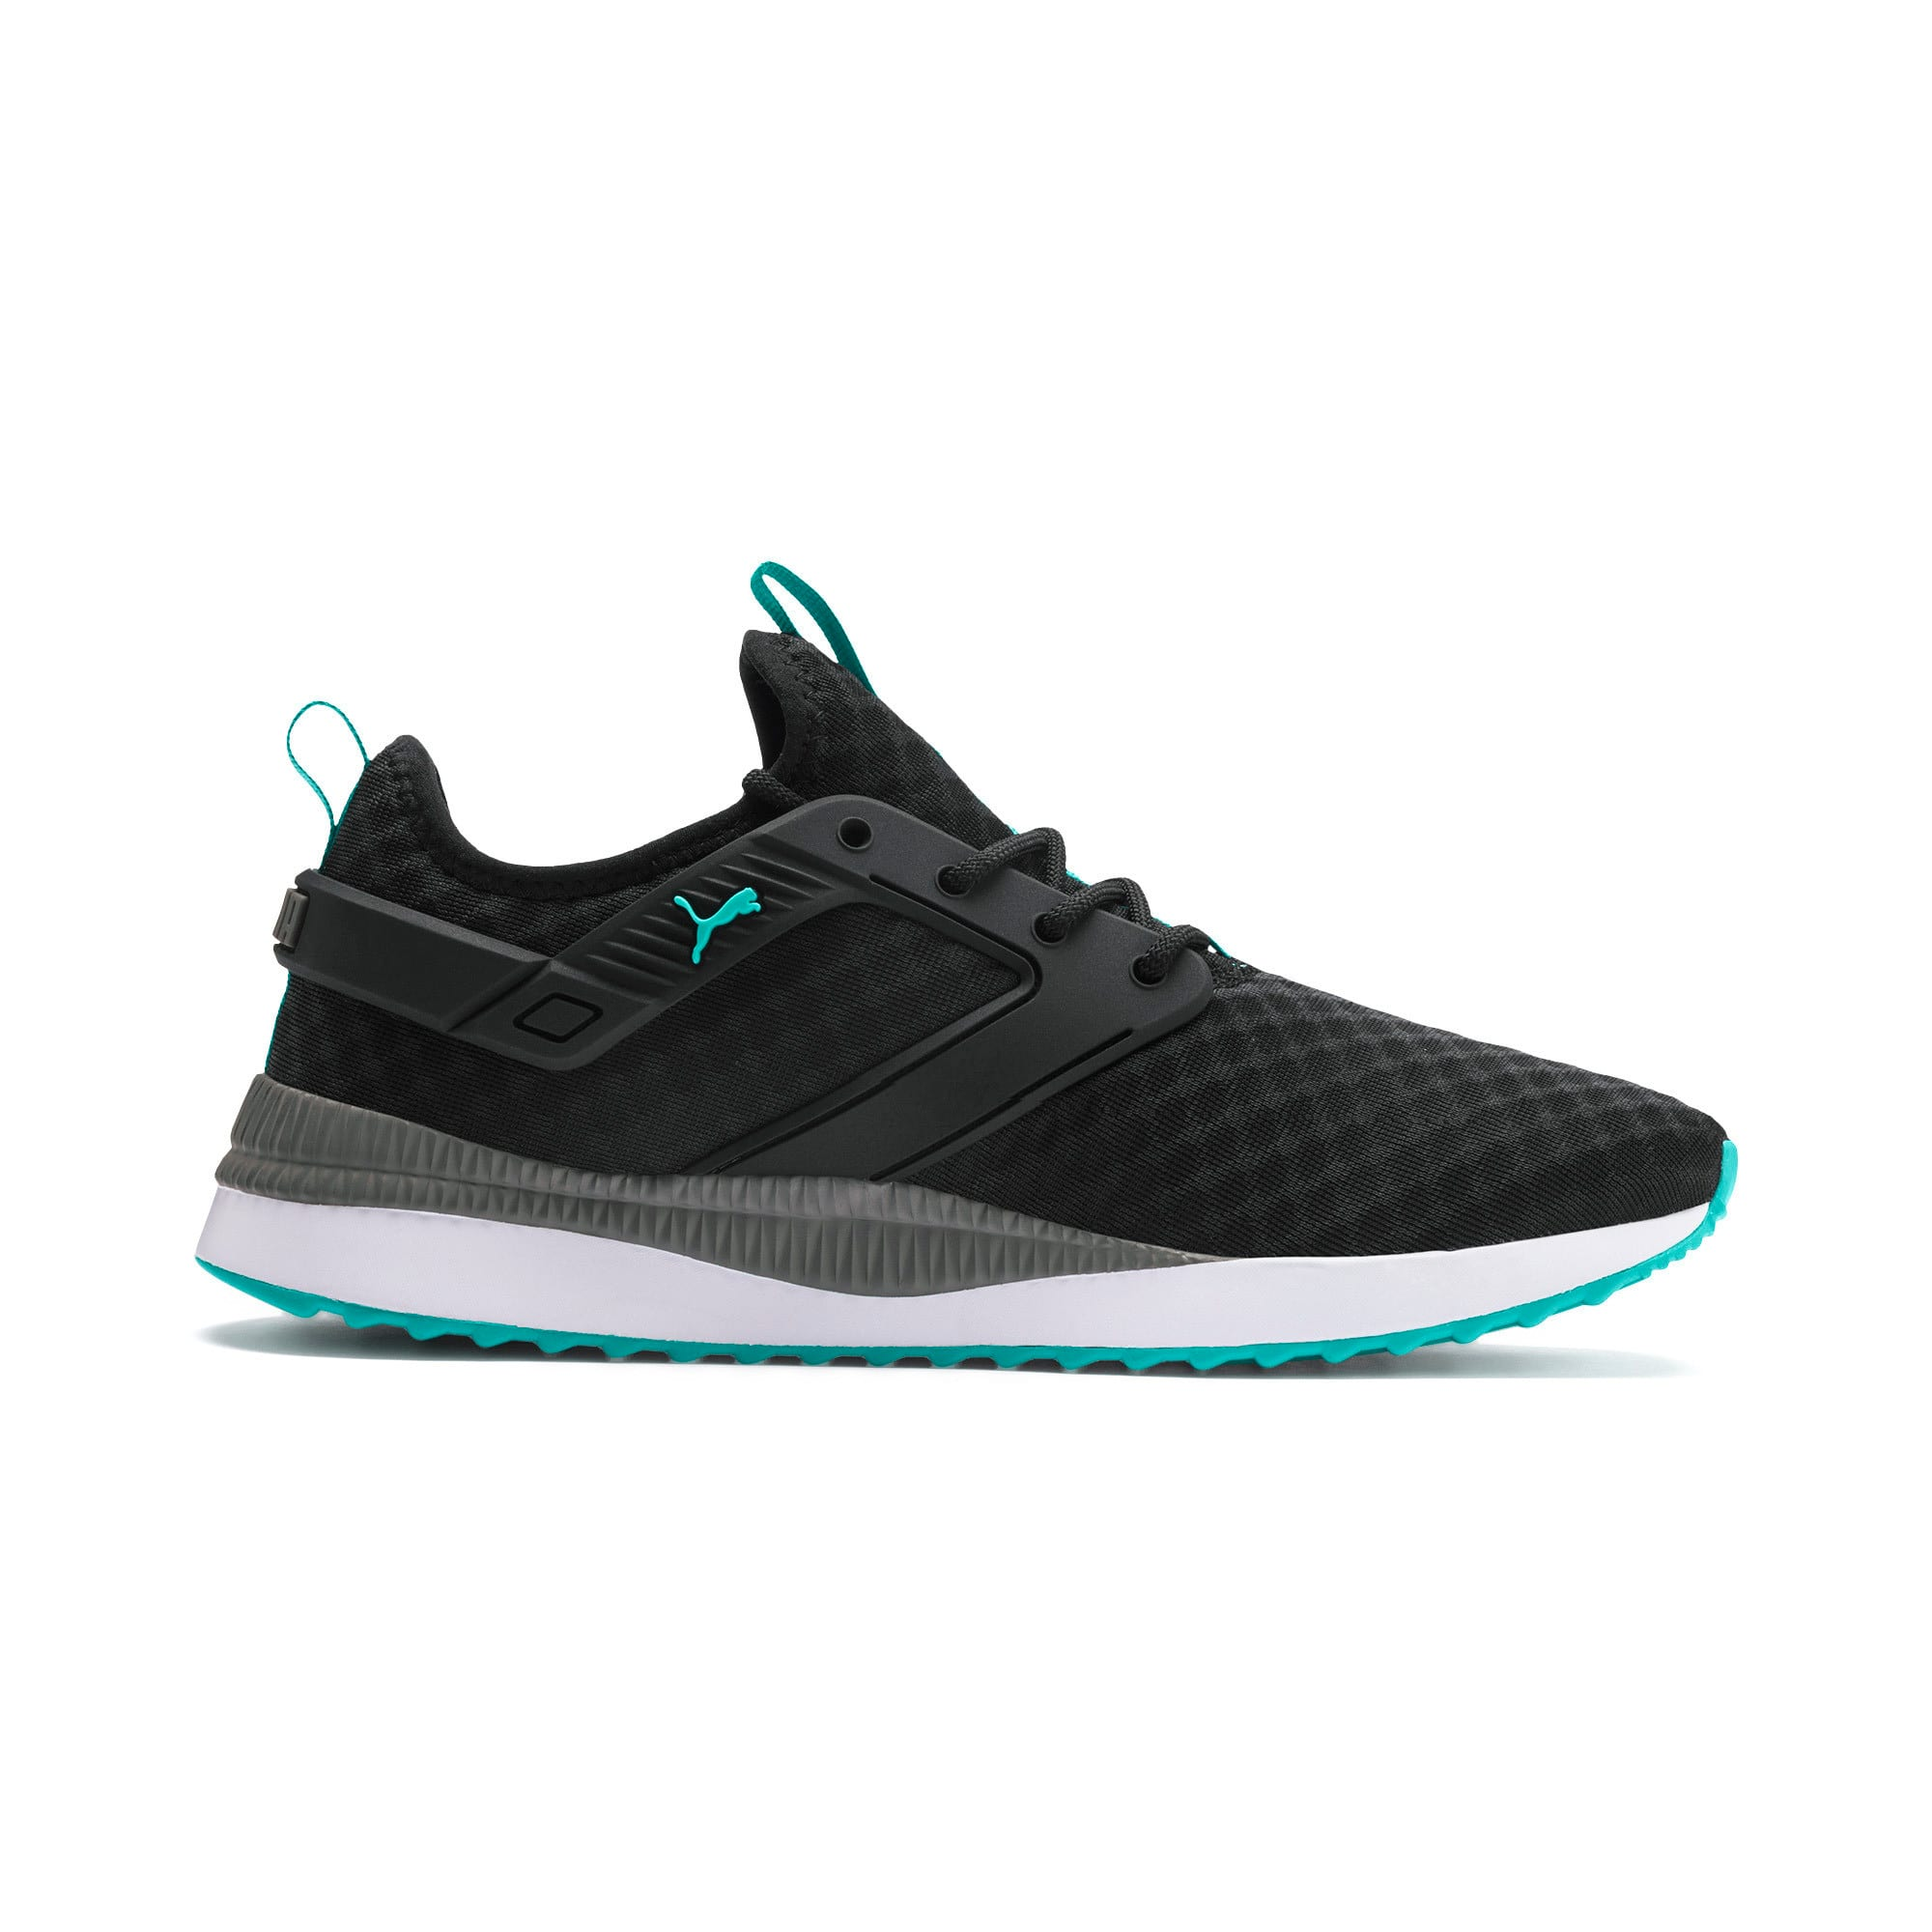 Thumbnail 6 of Pacer Next Excel Running Shoes, Puma Black-Blue Turquoise, medium